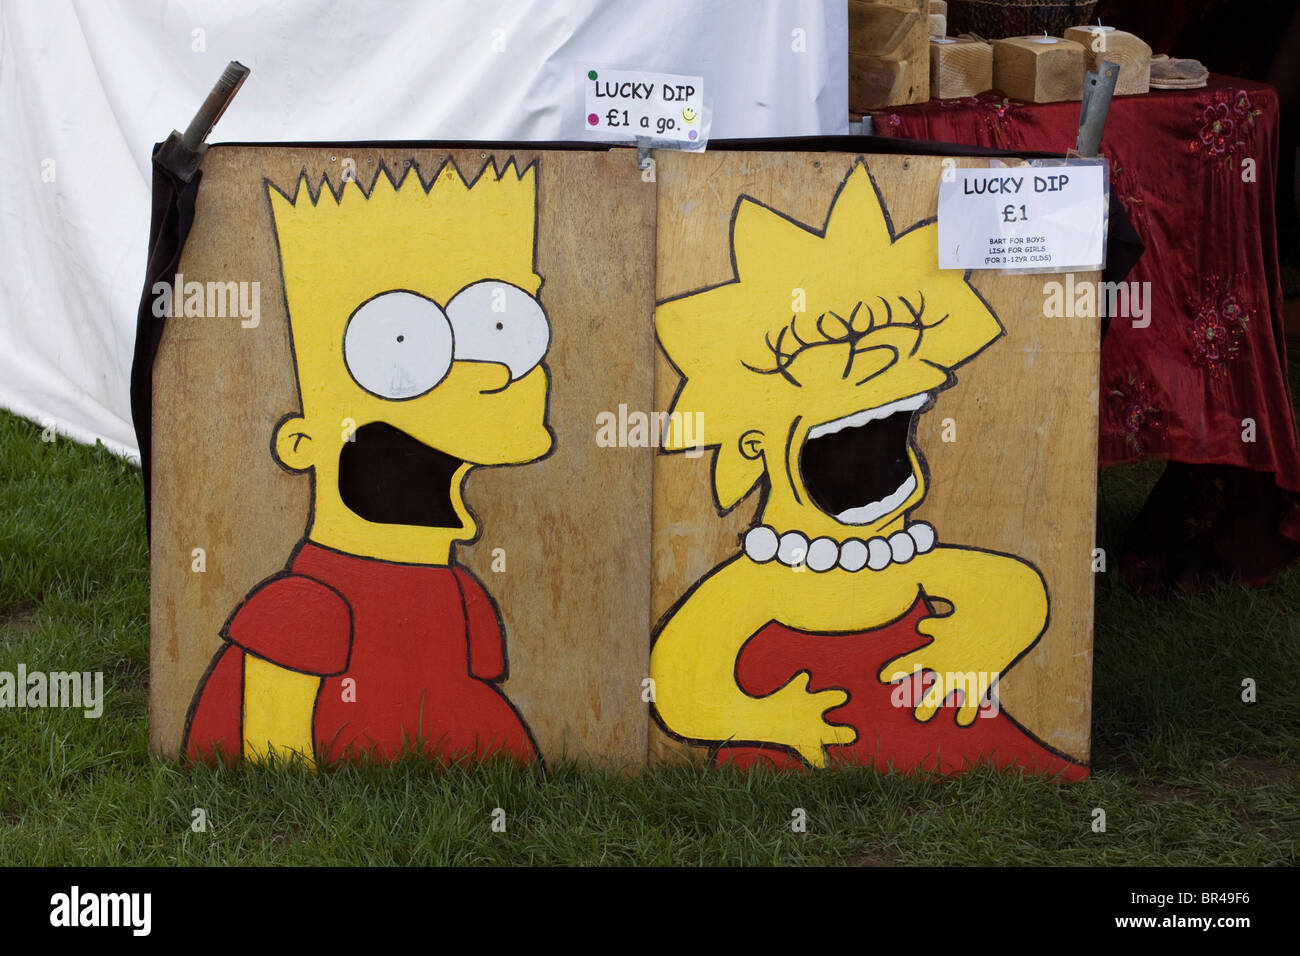 Wooden Lucky dip boxes with Bart and Lisa Simpson - Stock Image